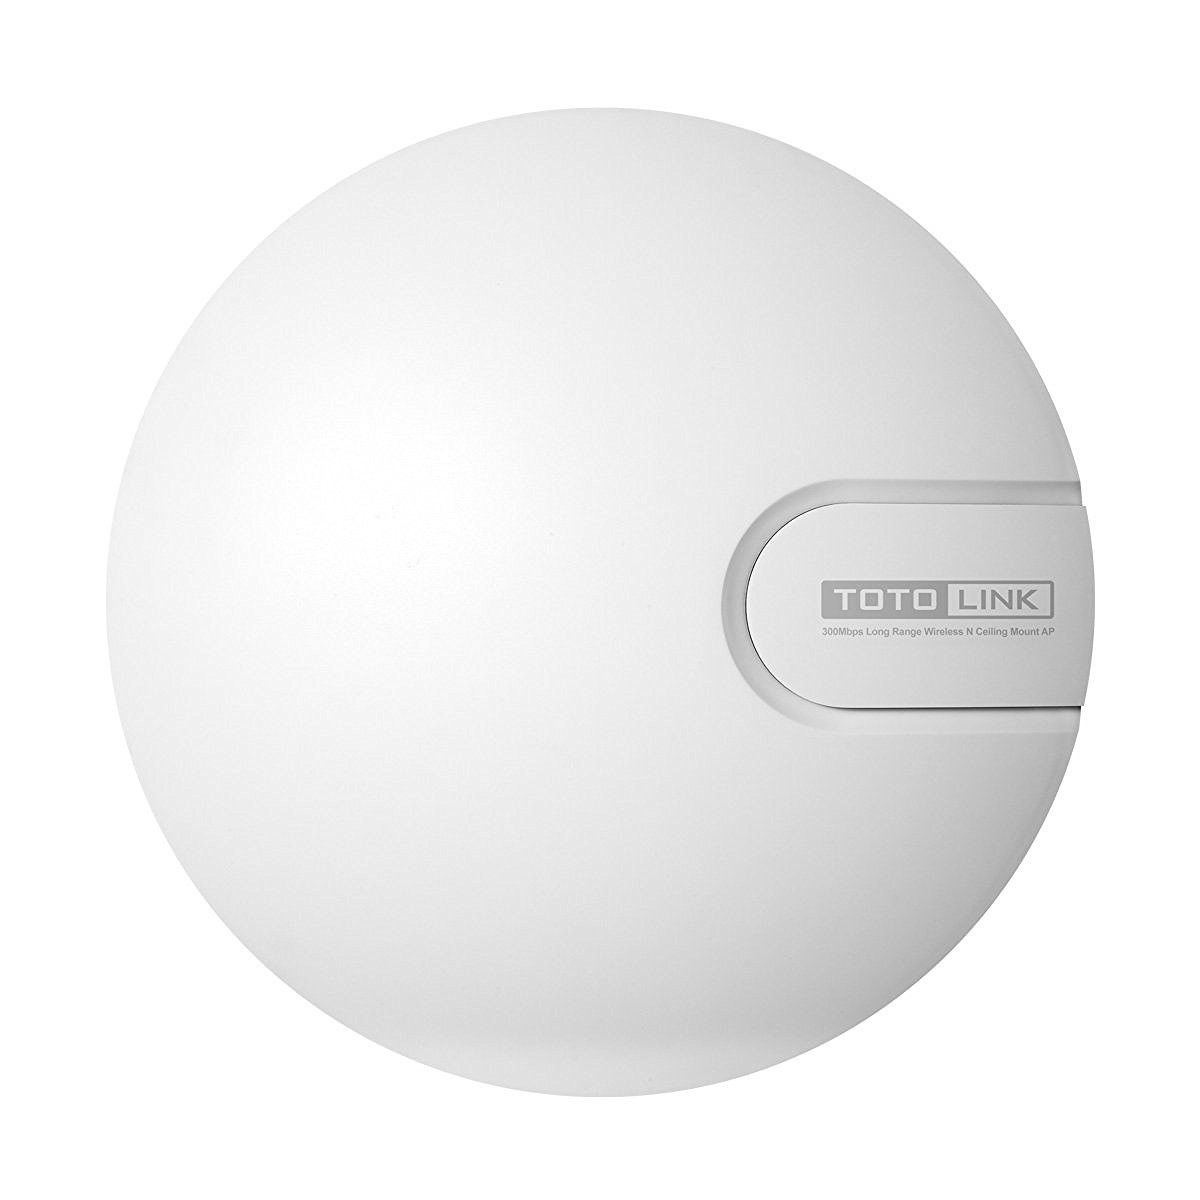 Totolink N9 300mbps Wireless N Ceiling Access Point | Buy Online in ...